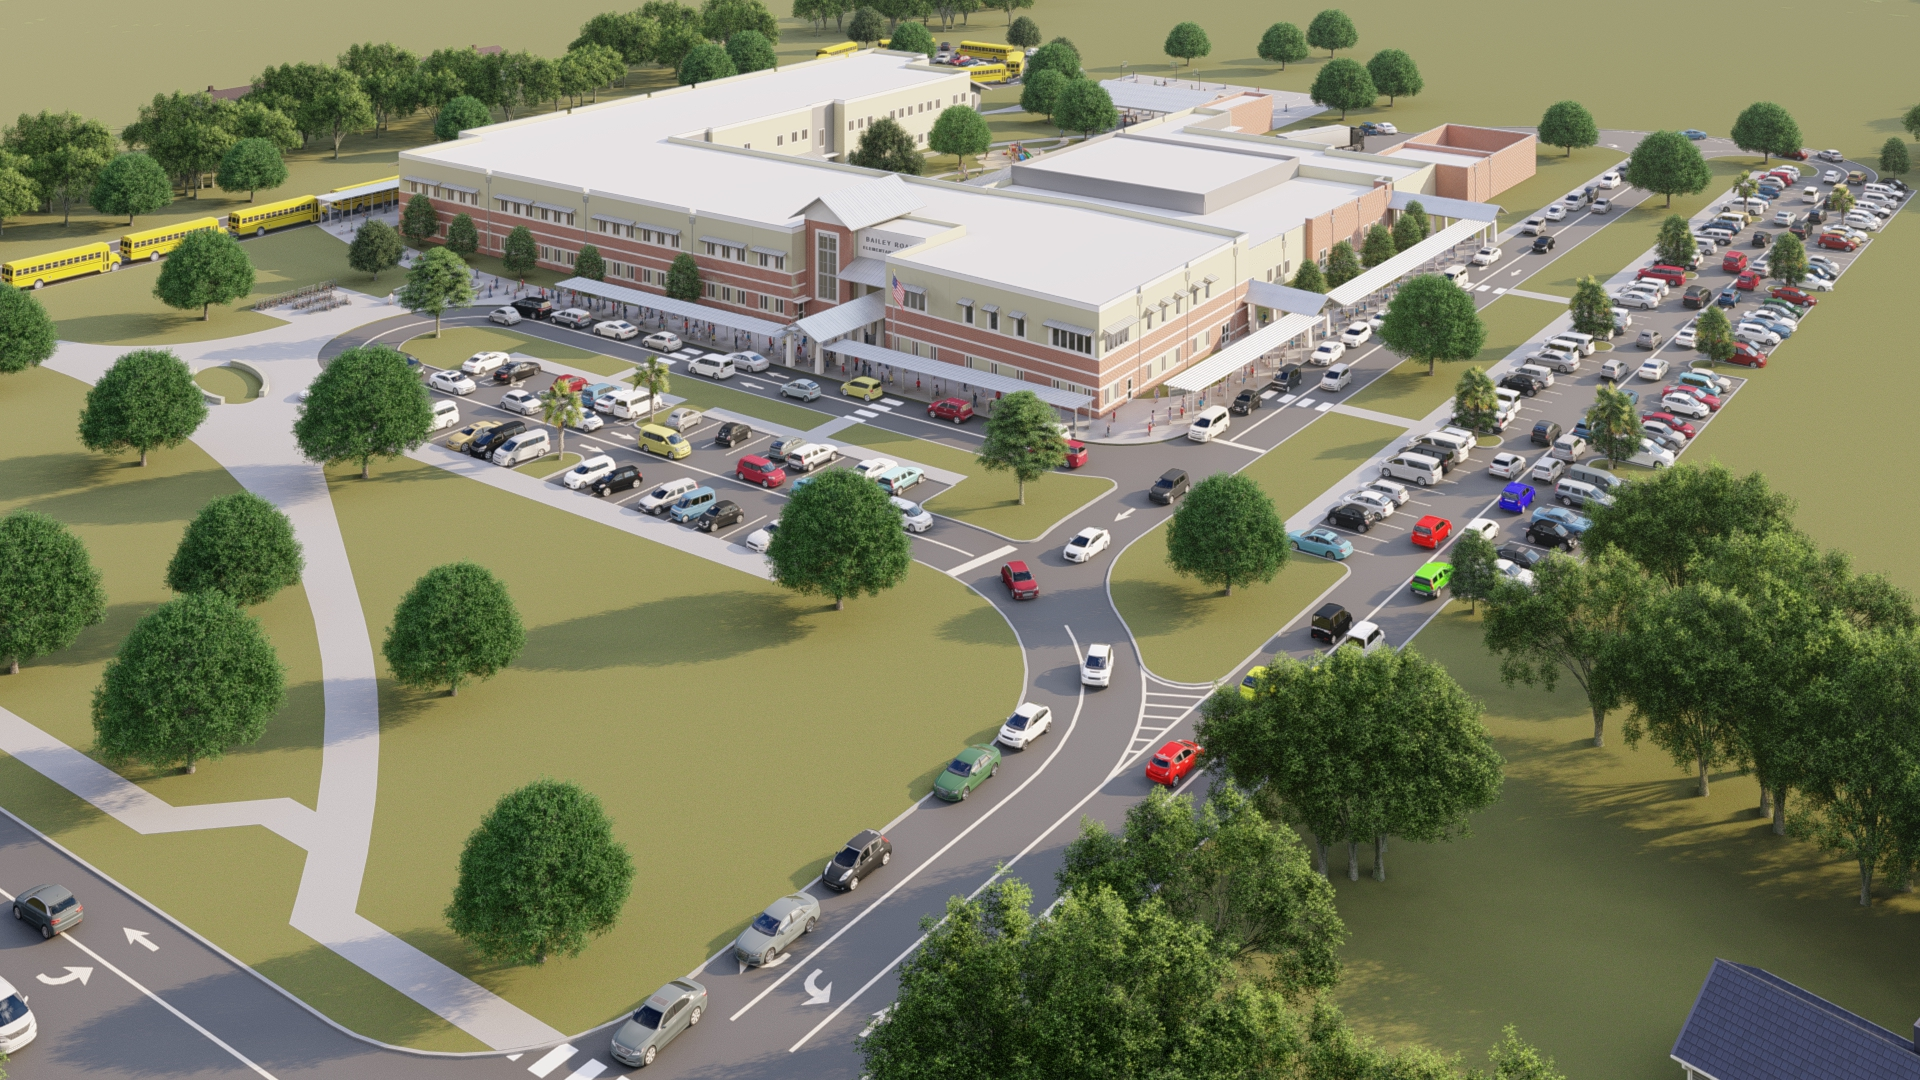 Rendering of Bailey Road elementary school